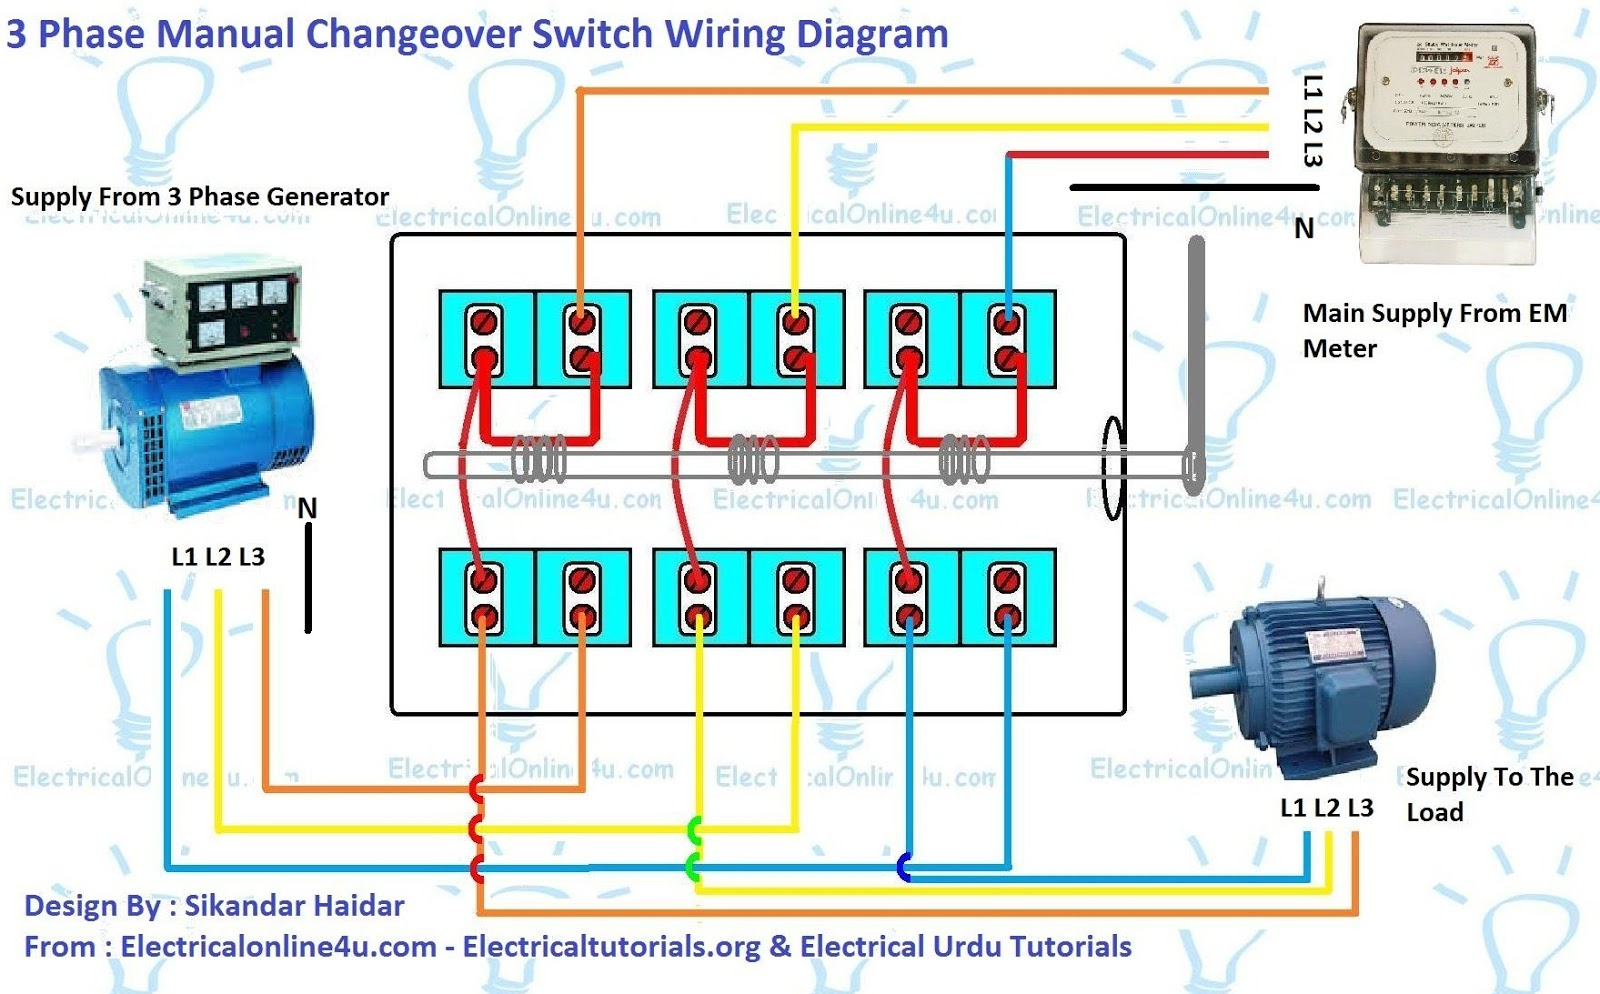 3 Phase Switch Wiring Diagram Will Be A Thing Three Motor Manual Changeover For Reversing